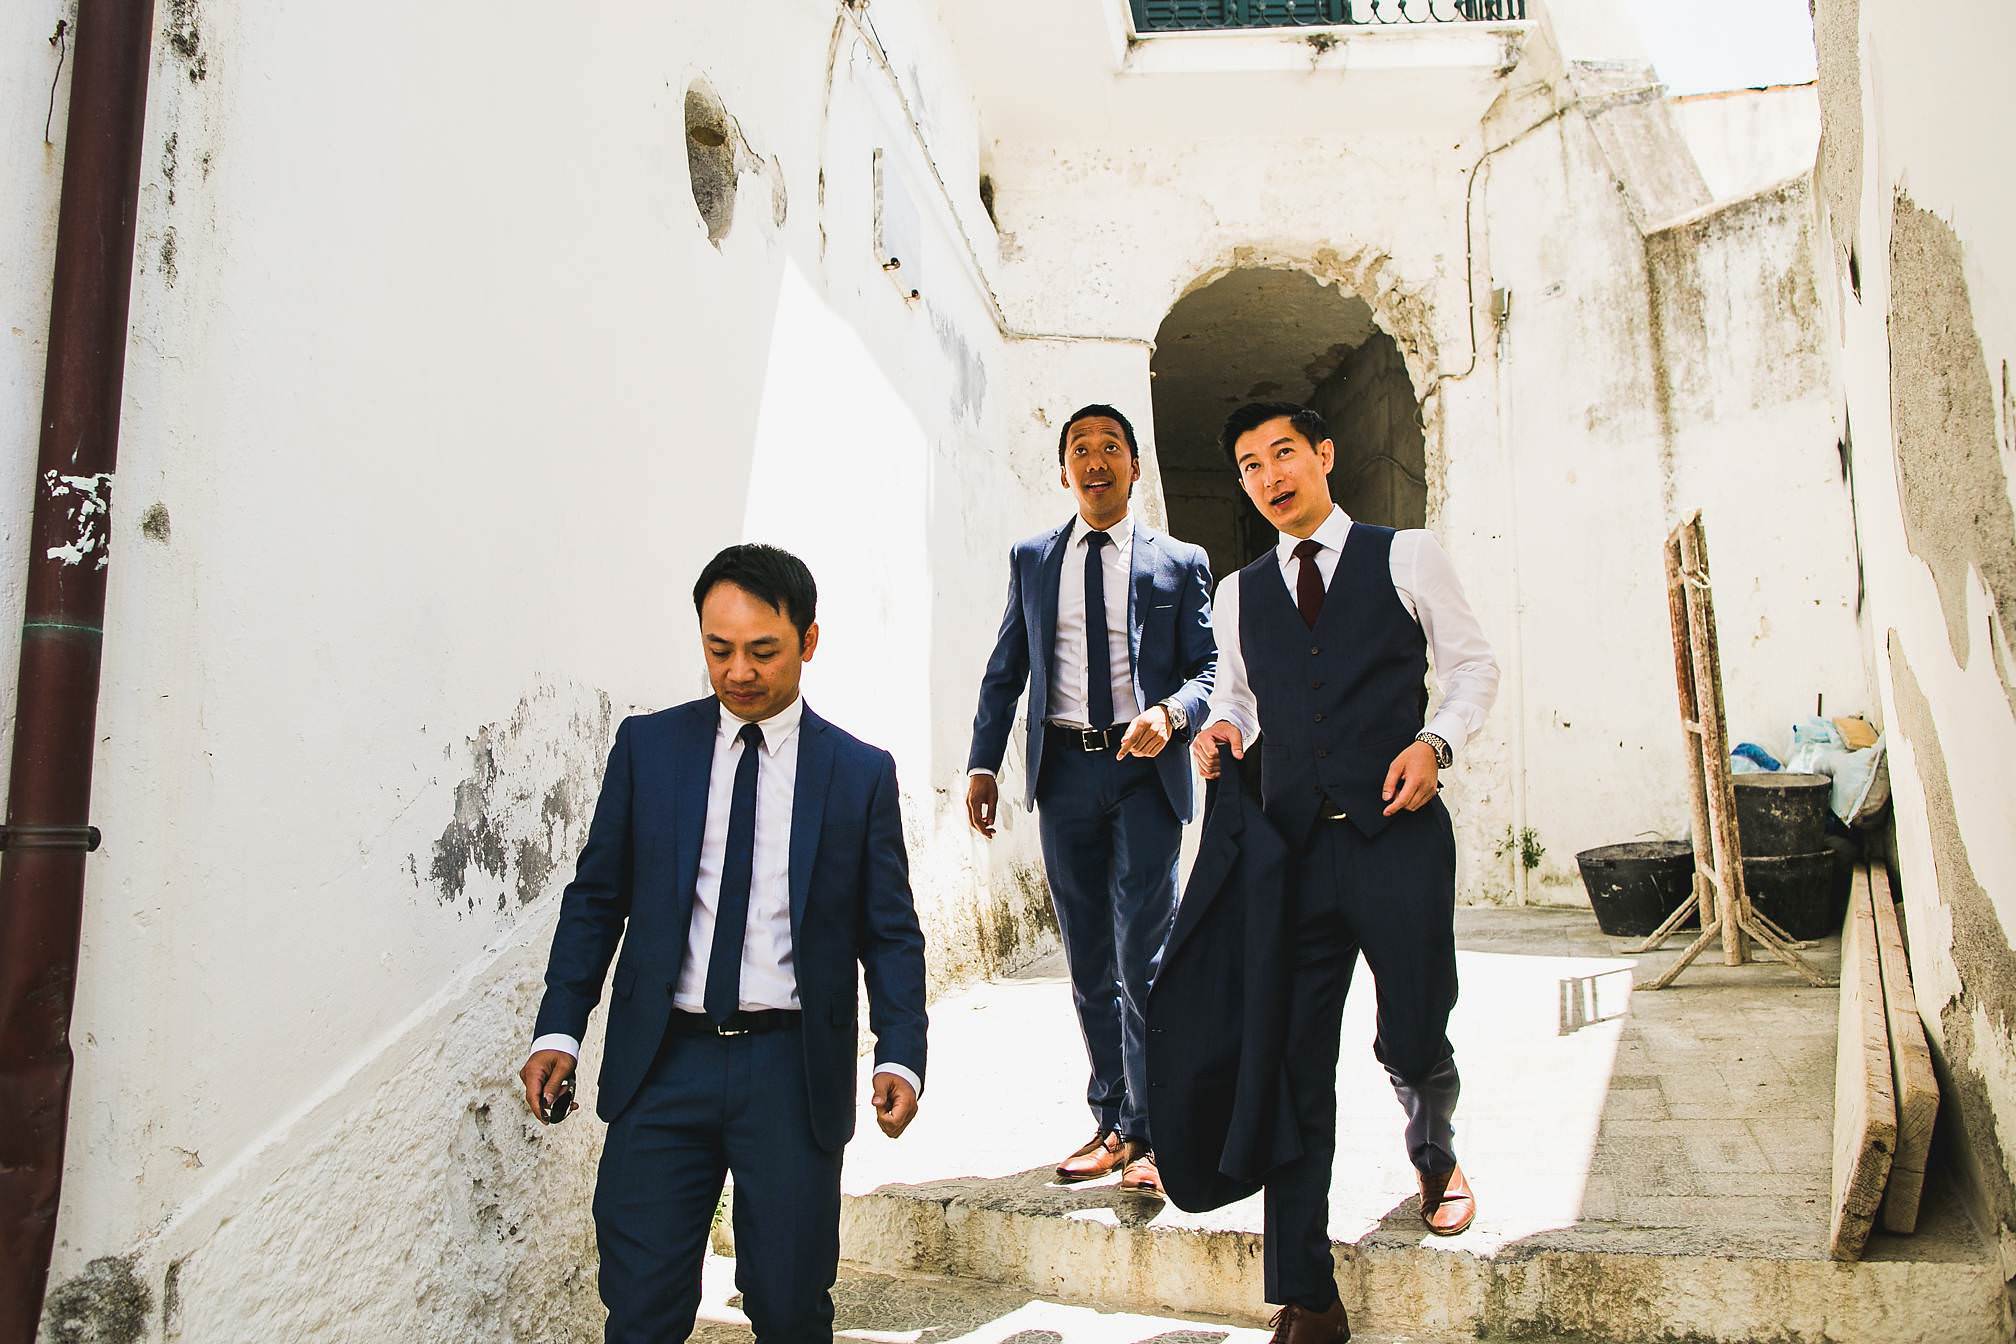 Groomsmen going for a walk on the morning of a wedding